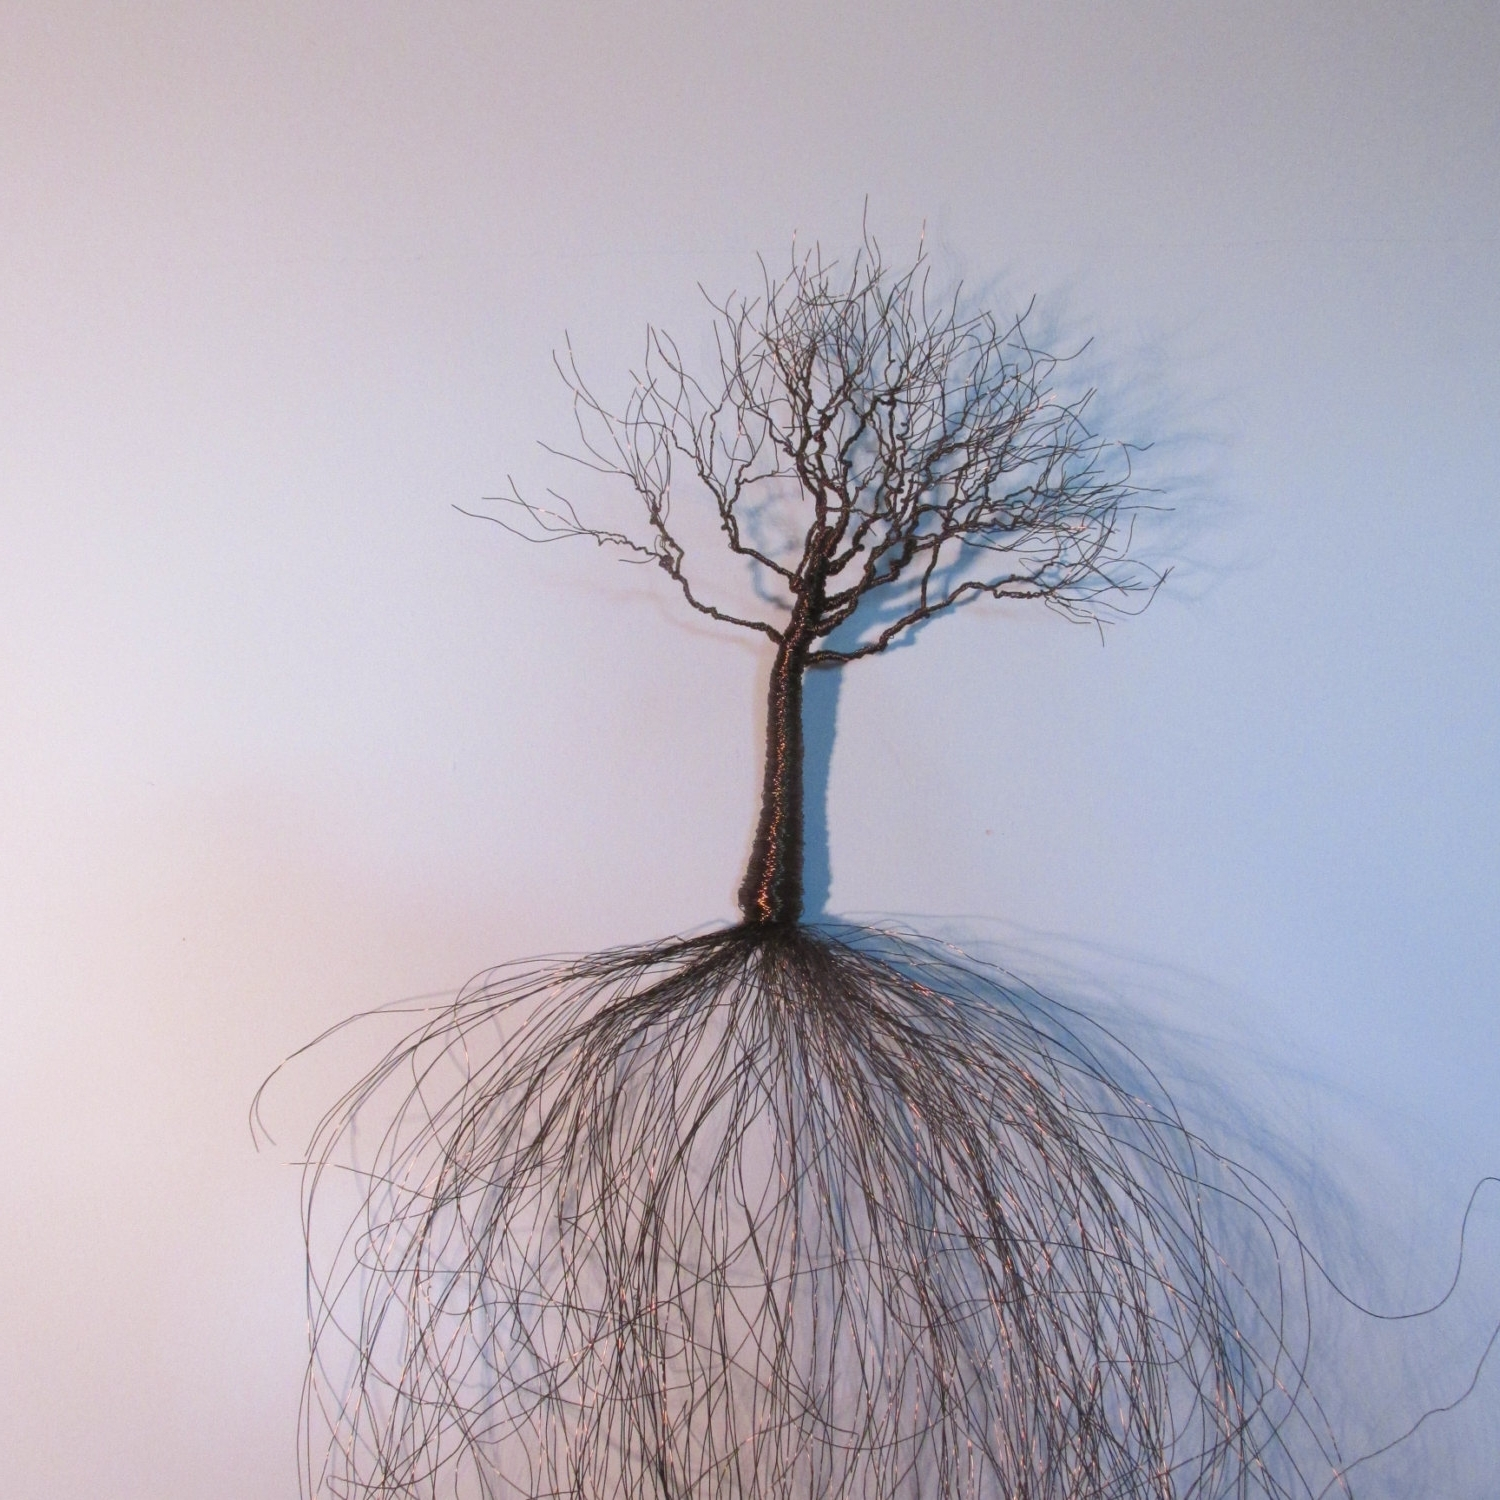 Fashionable Artistic Wire Design For Tree Of Life Metal Wall Art Decor Sculpture Inside Wire Wall Art (View 4 of 15)